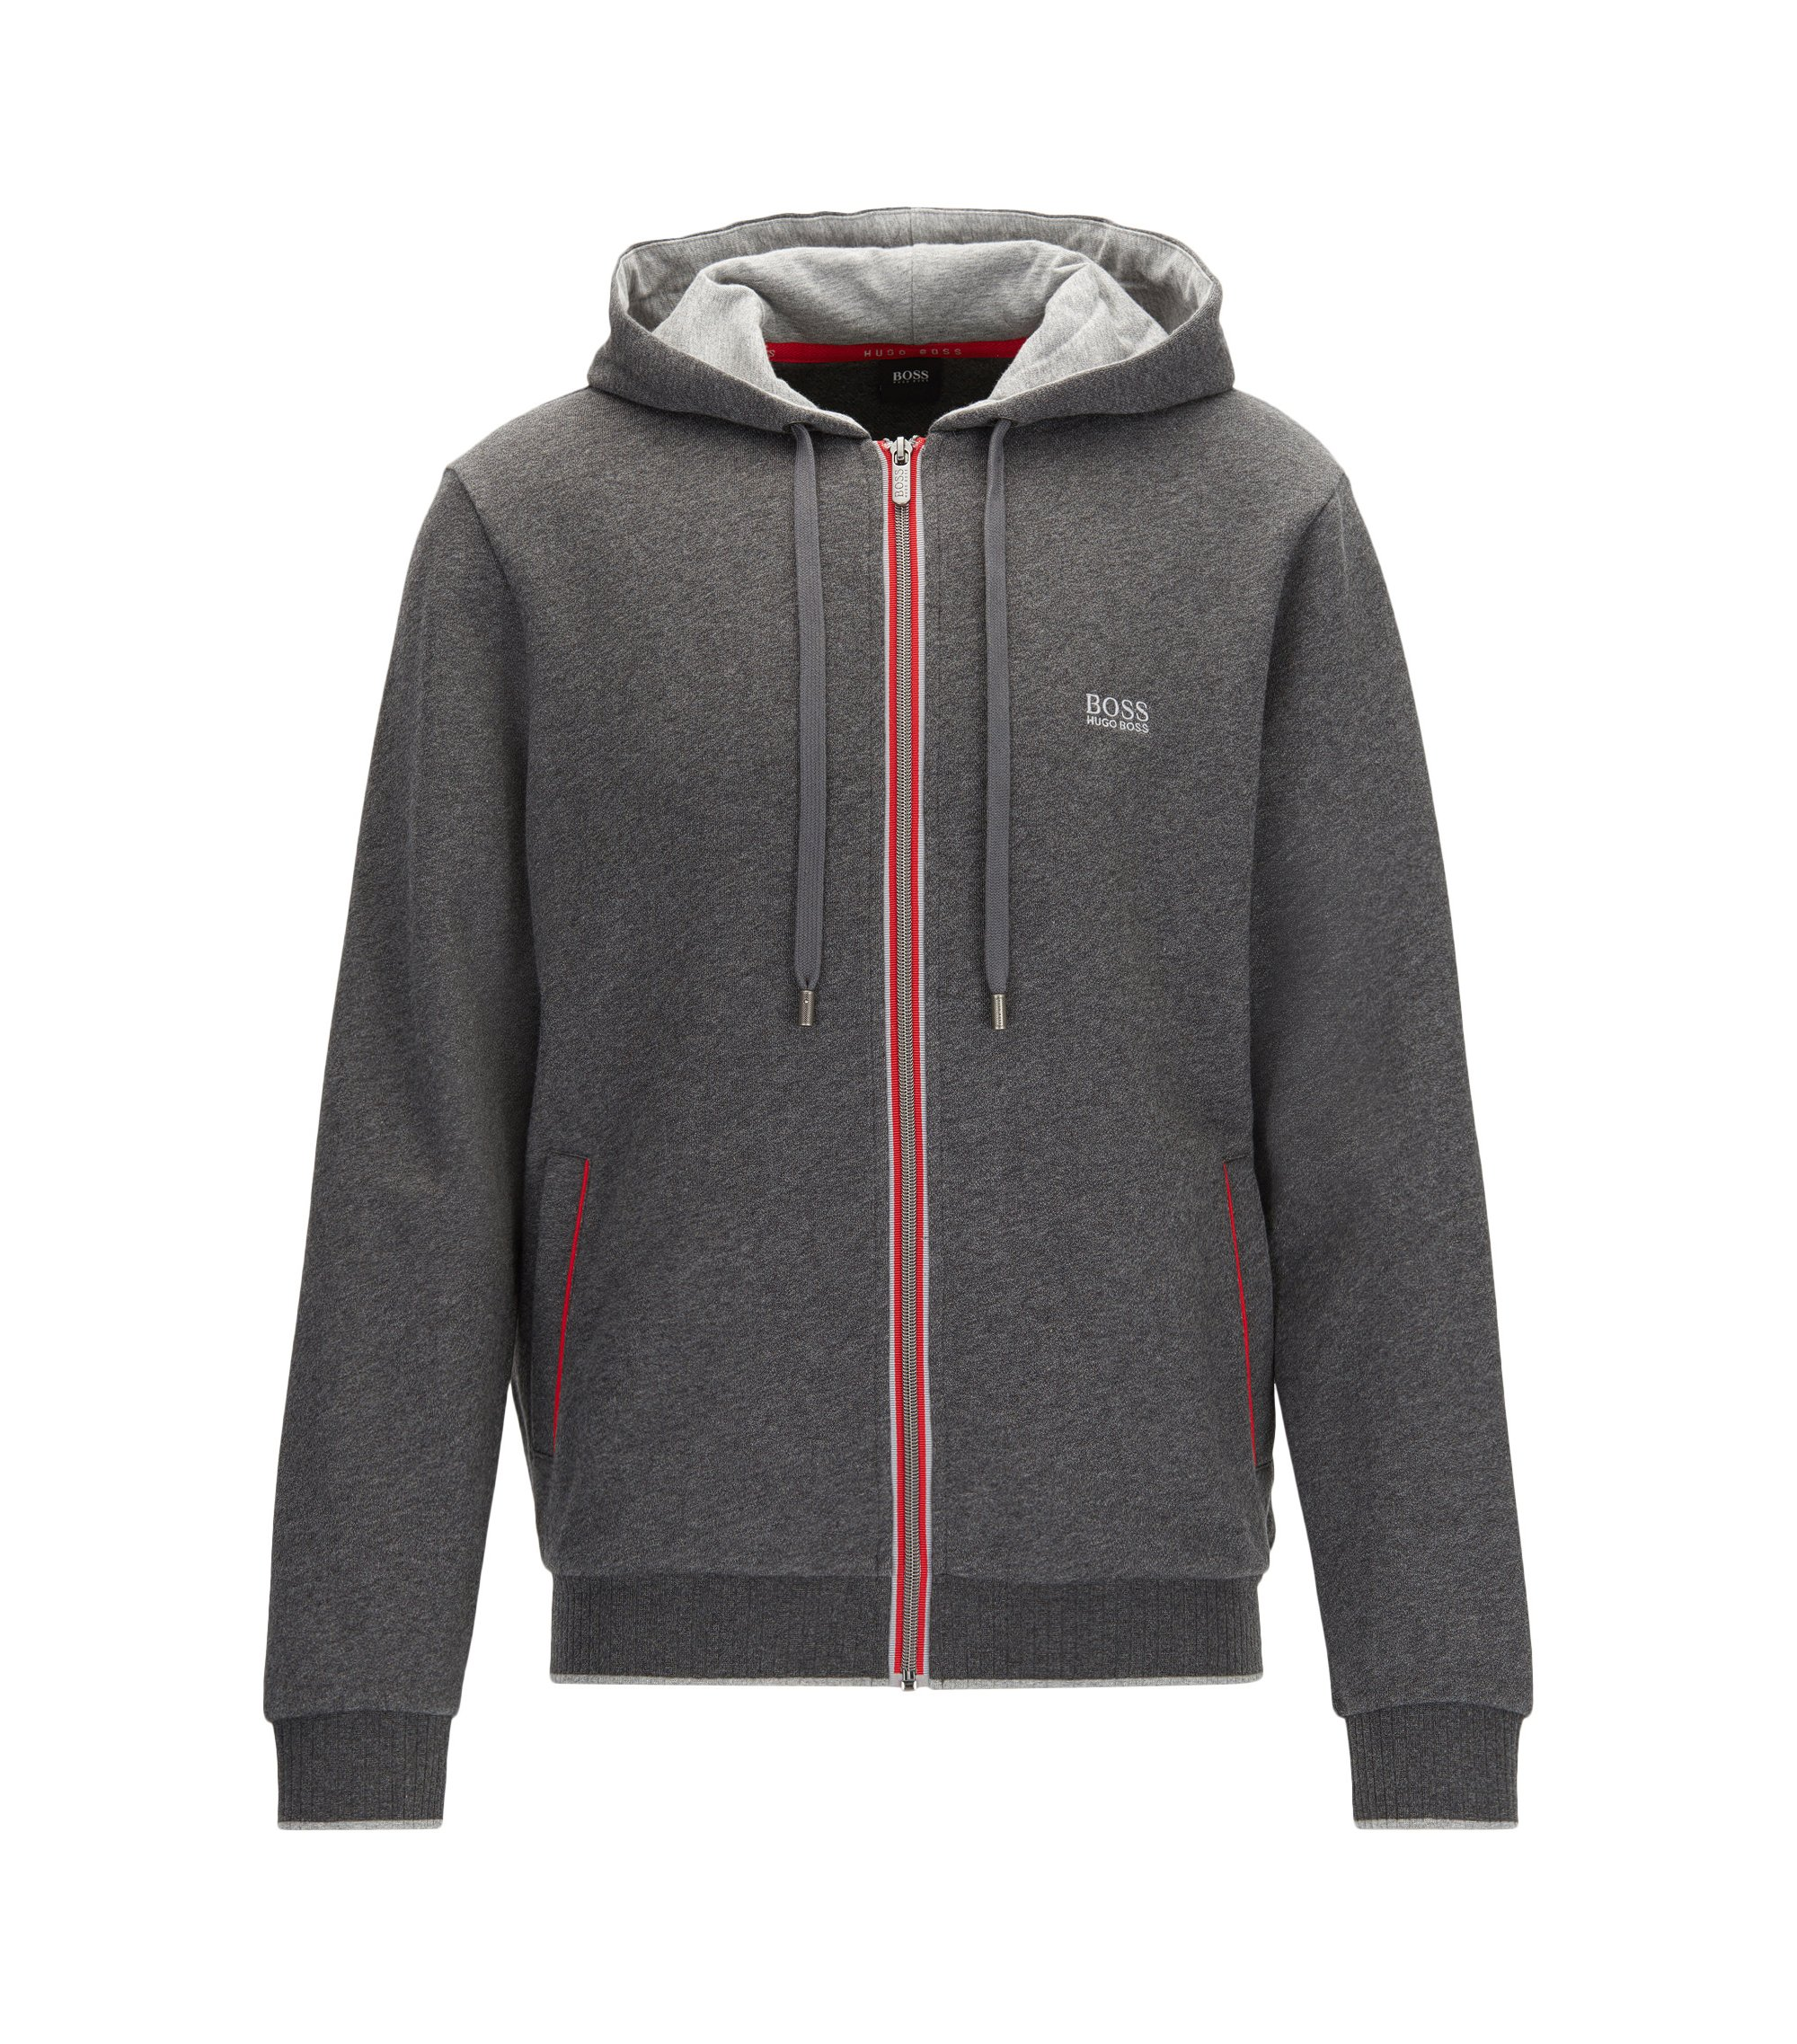 Piped Cotton Blend Jersey Hoodie | Authentic Jacket H, Grey